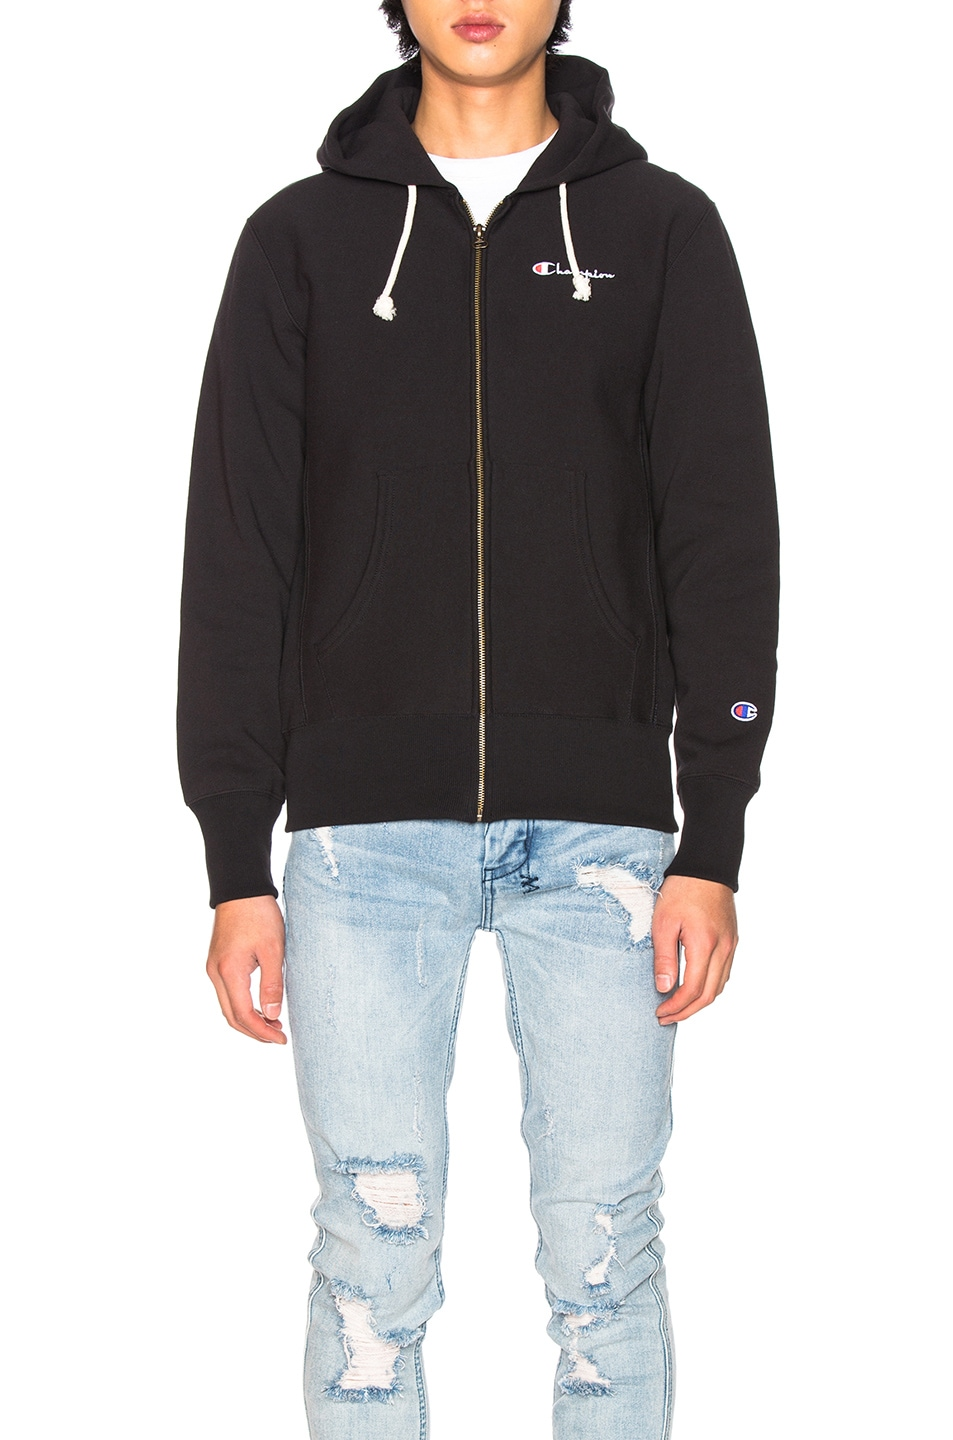 Image 2 of Champion Reverse Weave Hooded Sweatshirt in Black